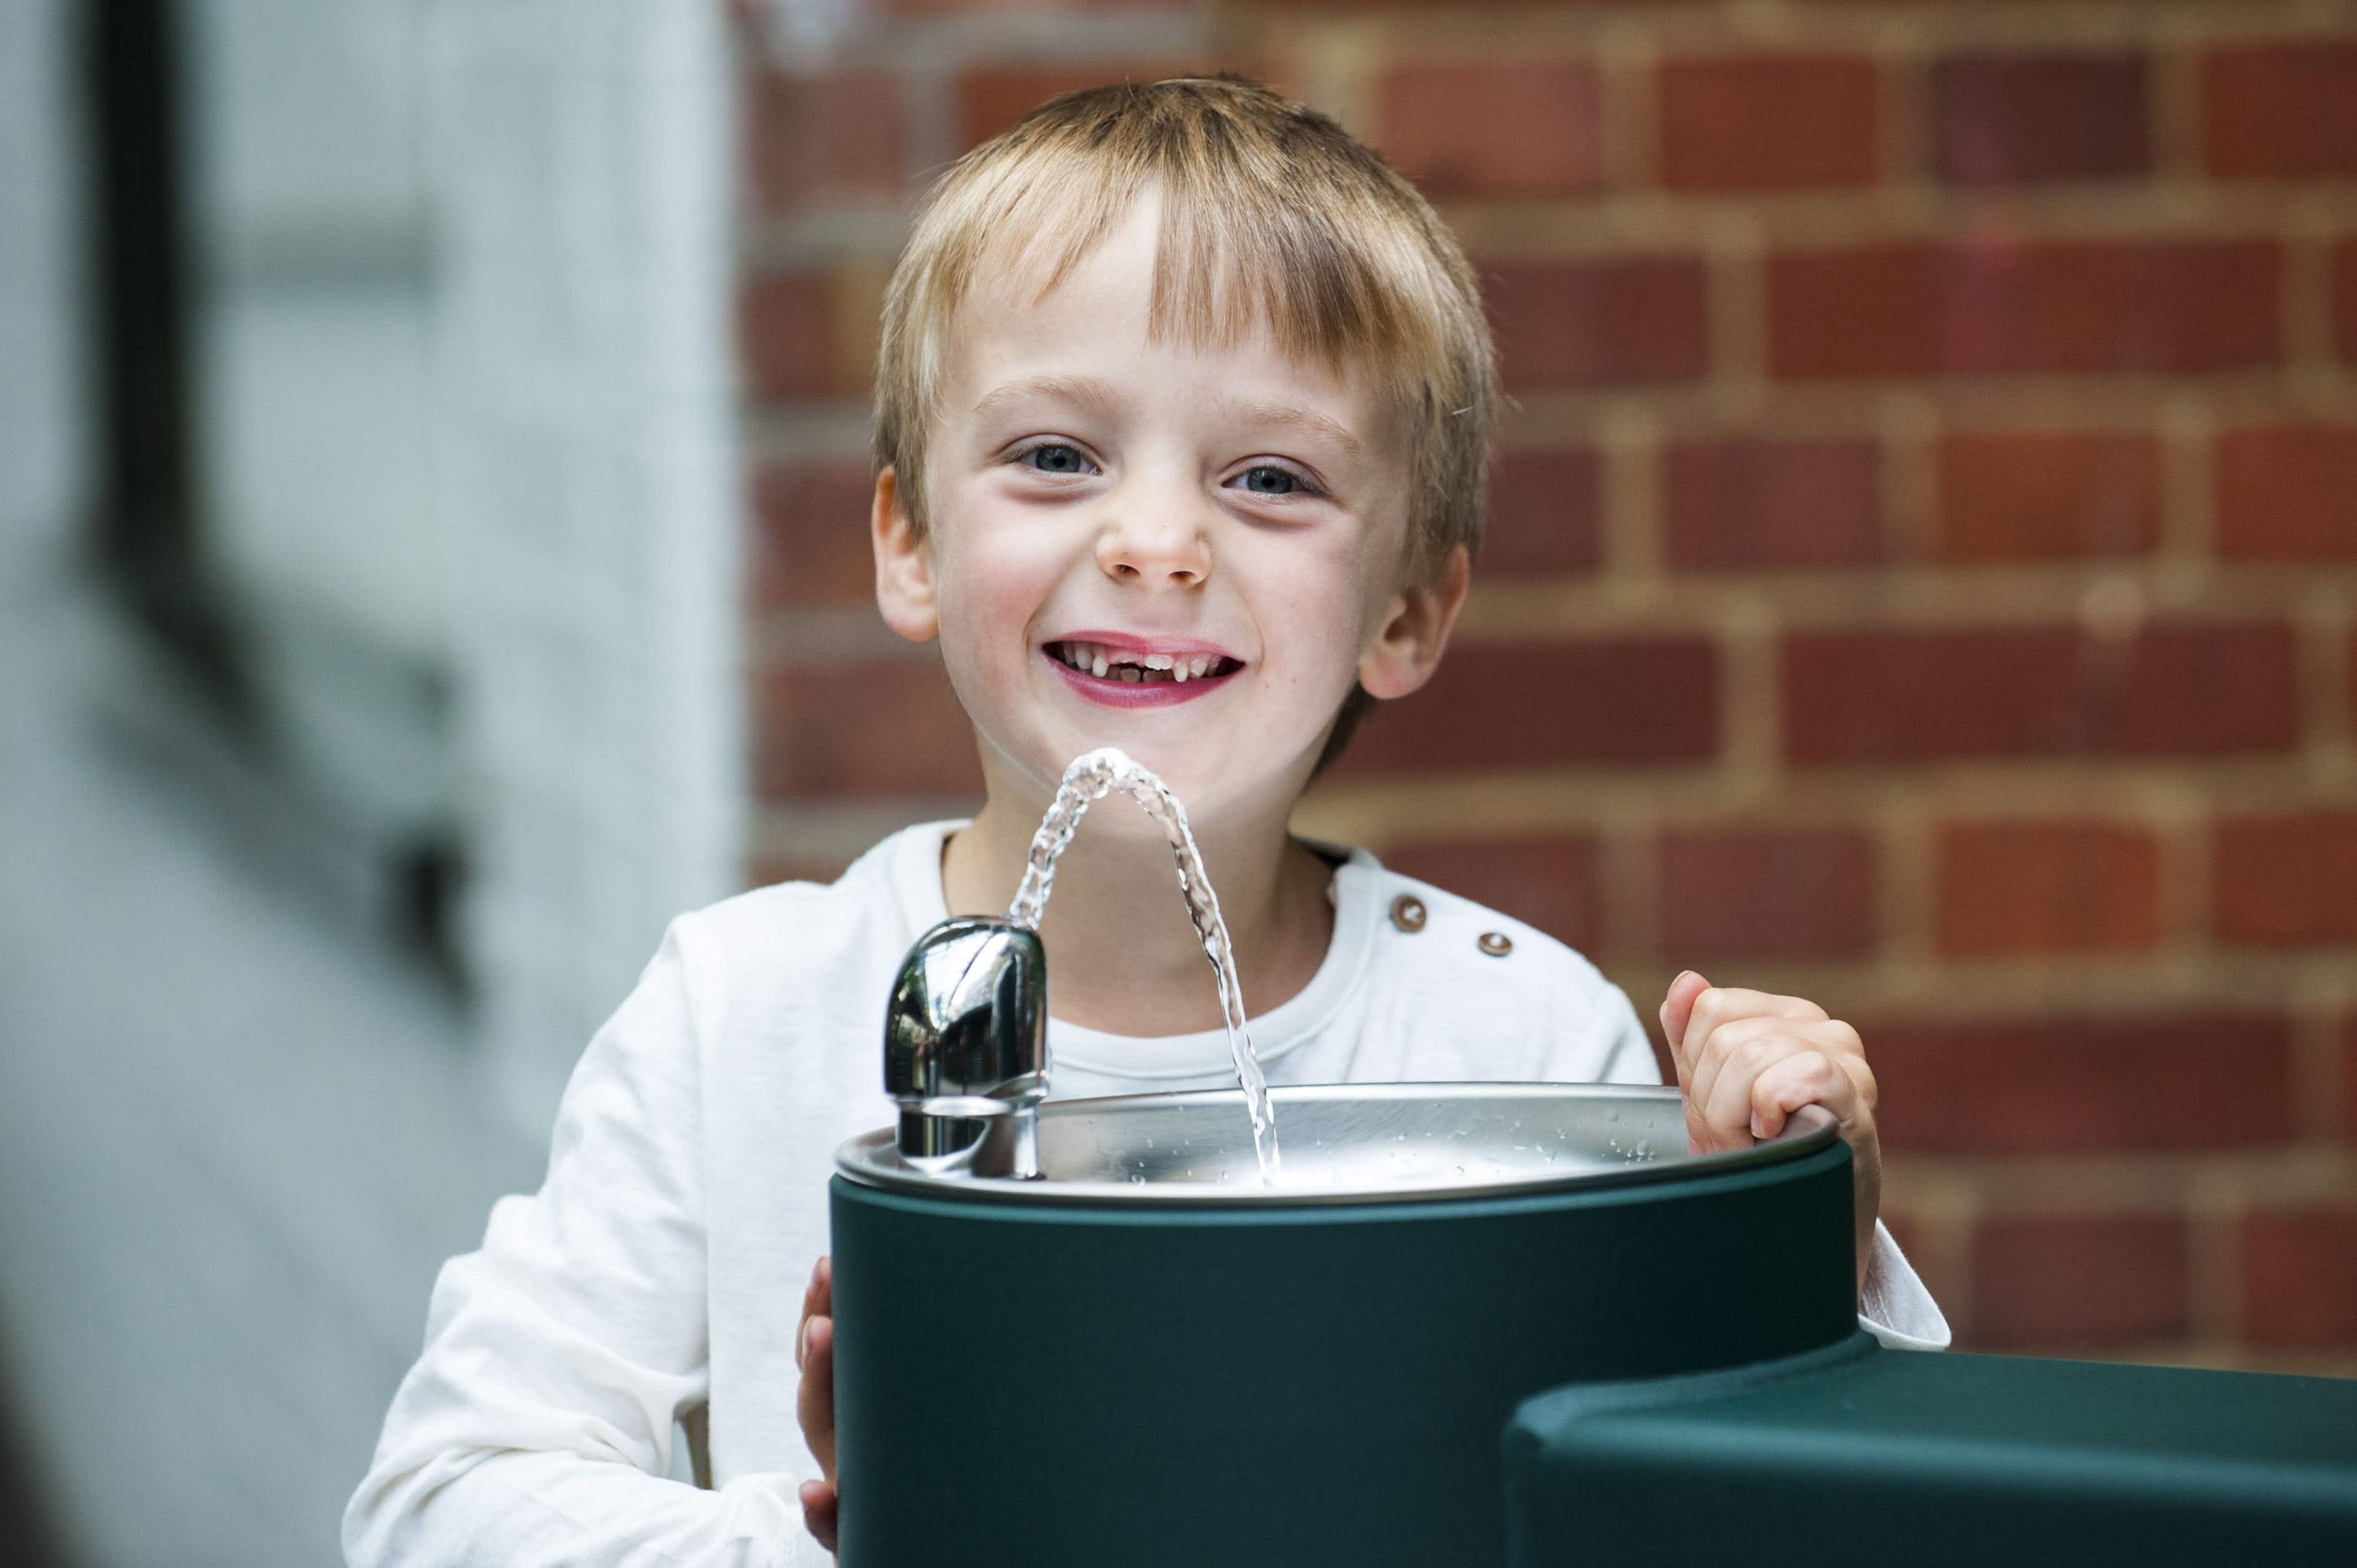 Borough Market installs new drinking fountains as it aims to be the UK's greenest place to shop